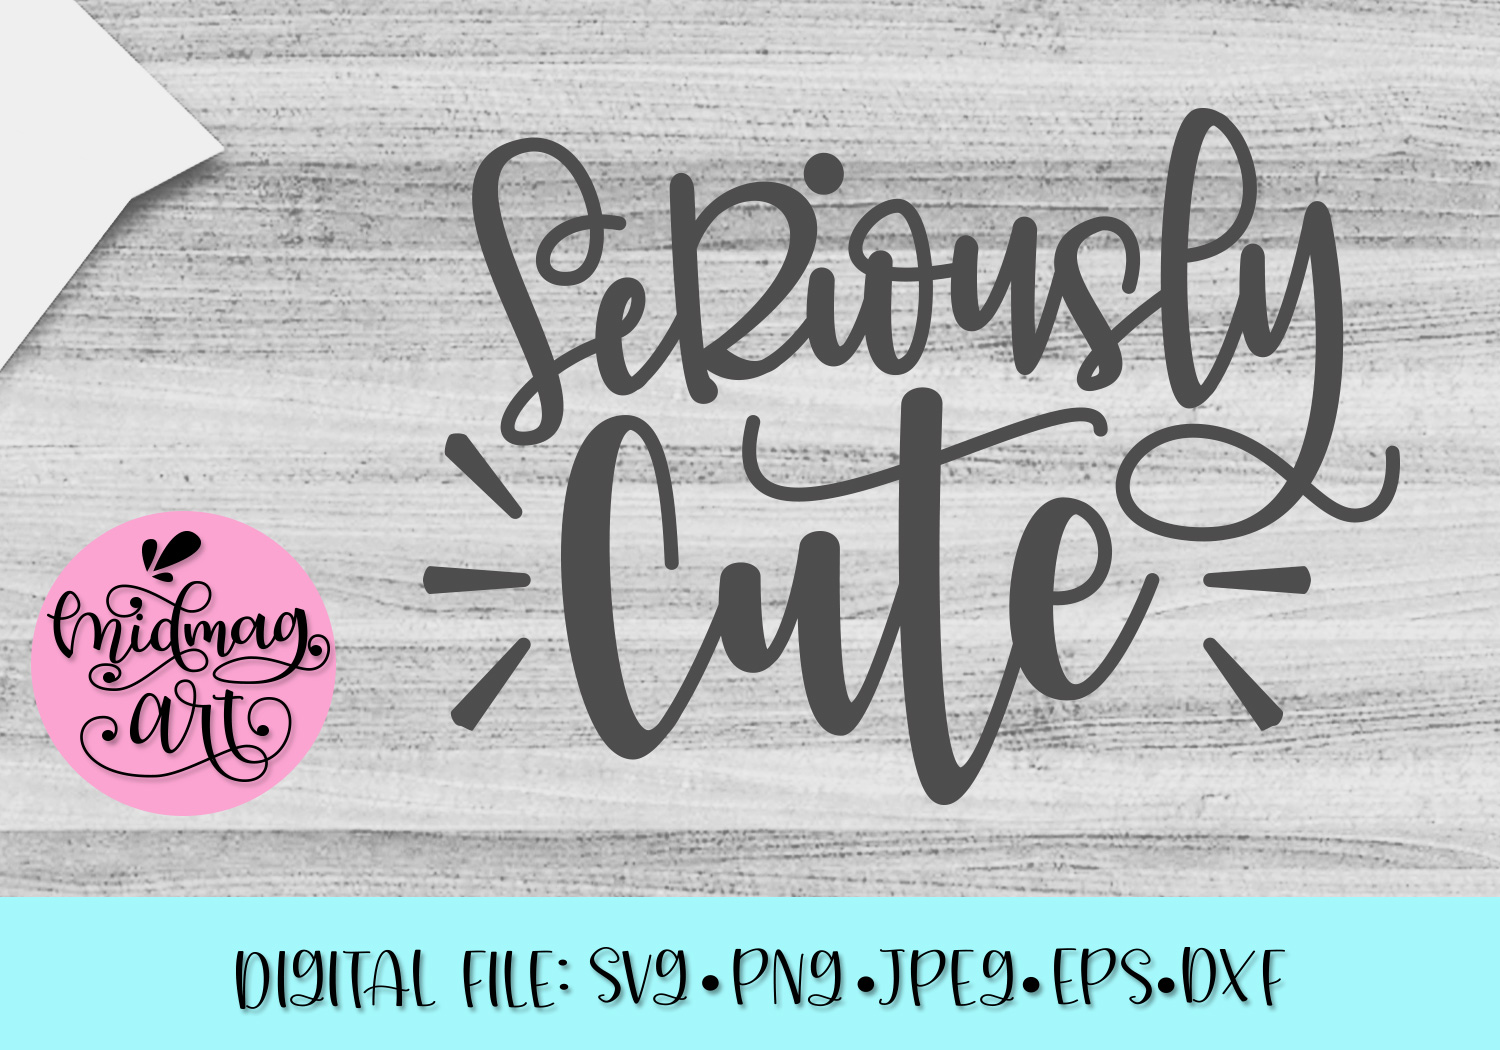 Download Free Seriously Cute Svg Graphic By Midmagart Creative Fabrica for Cricut Explore, Silhouette and other cutting machines.